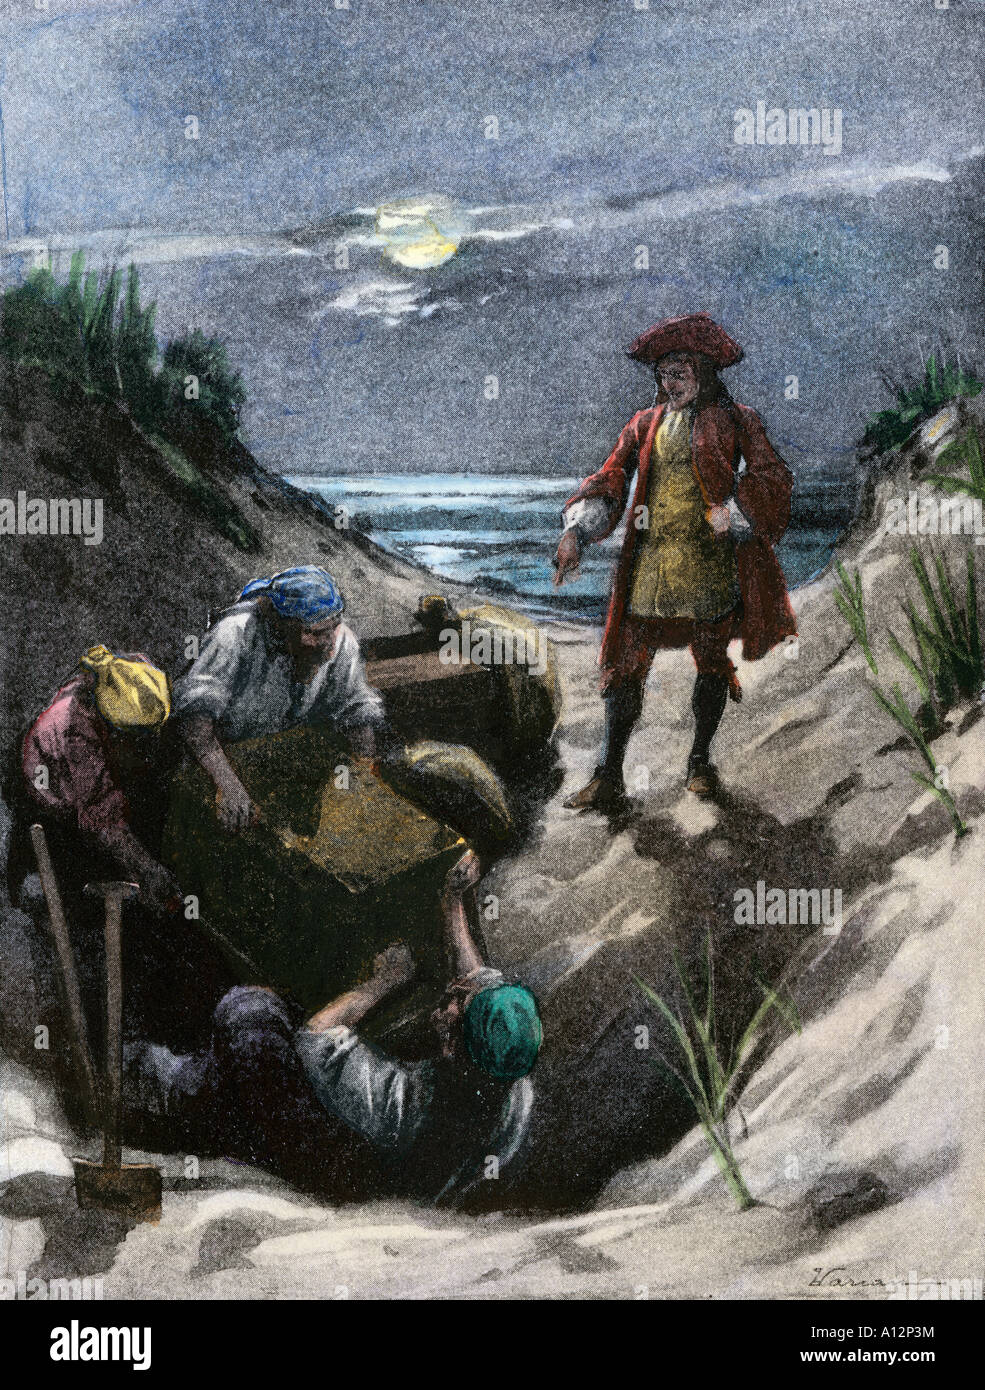 Pirate Captain Kidd burying his treasure possibly on Gardiners Island in New York harbor. Hand-colored halftone - Stock Image